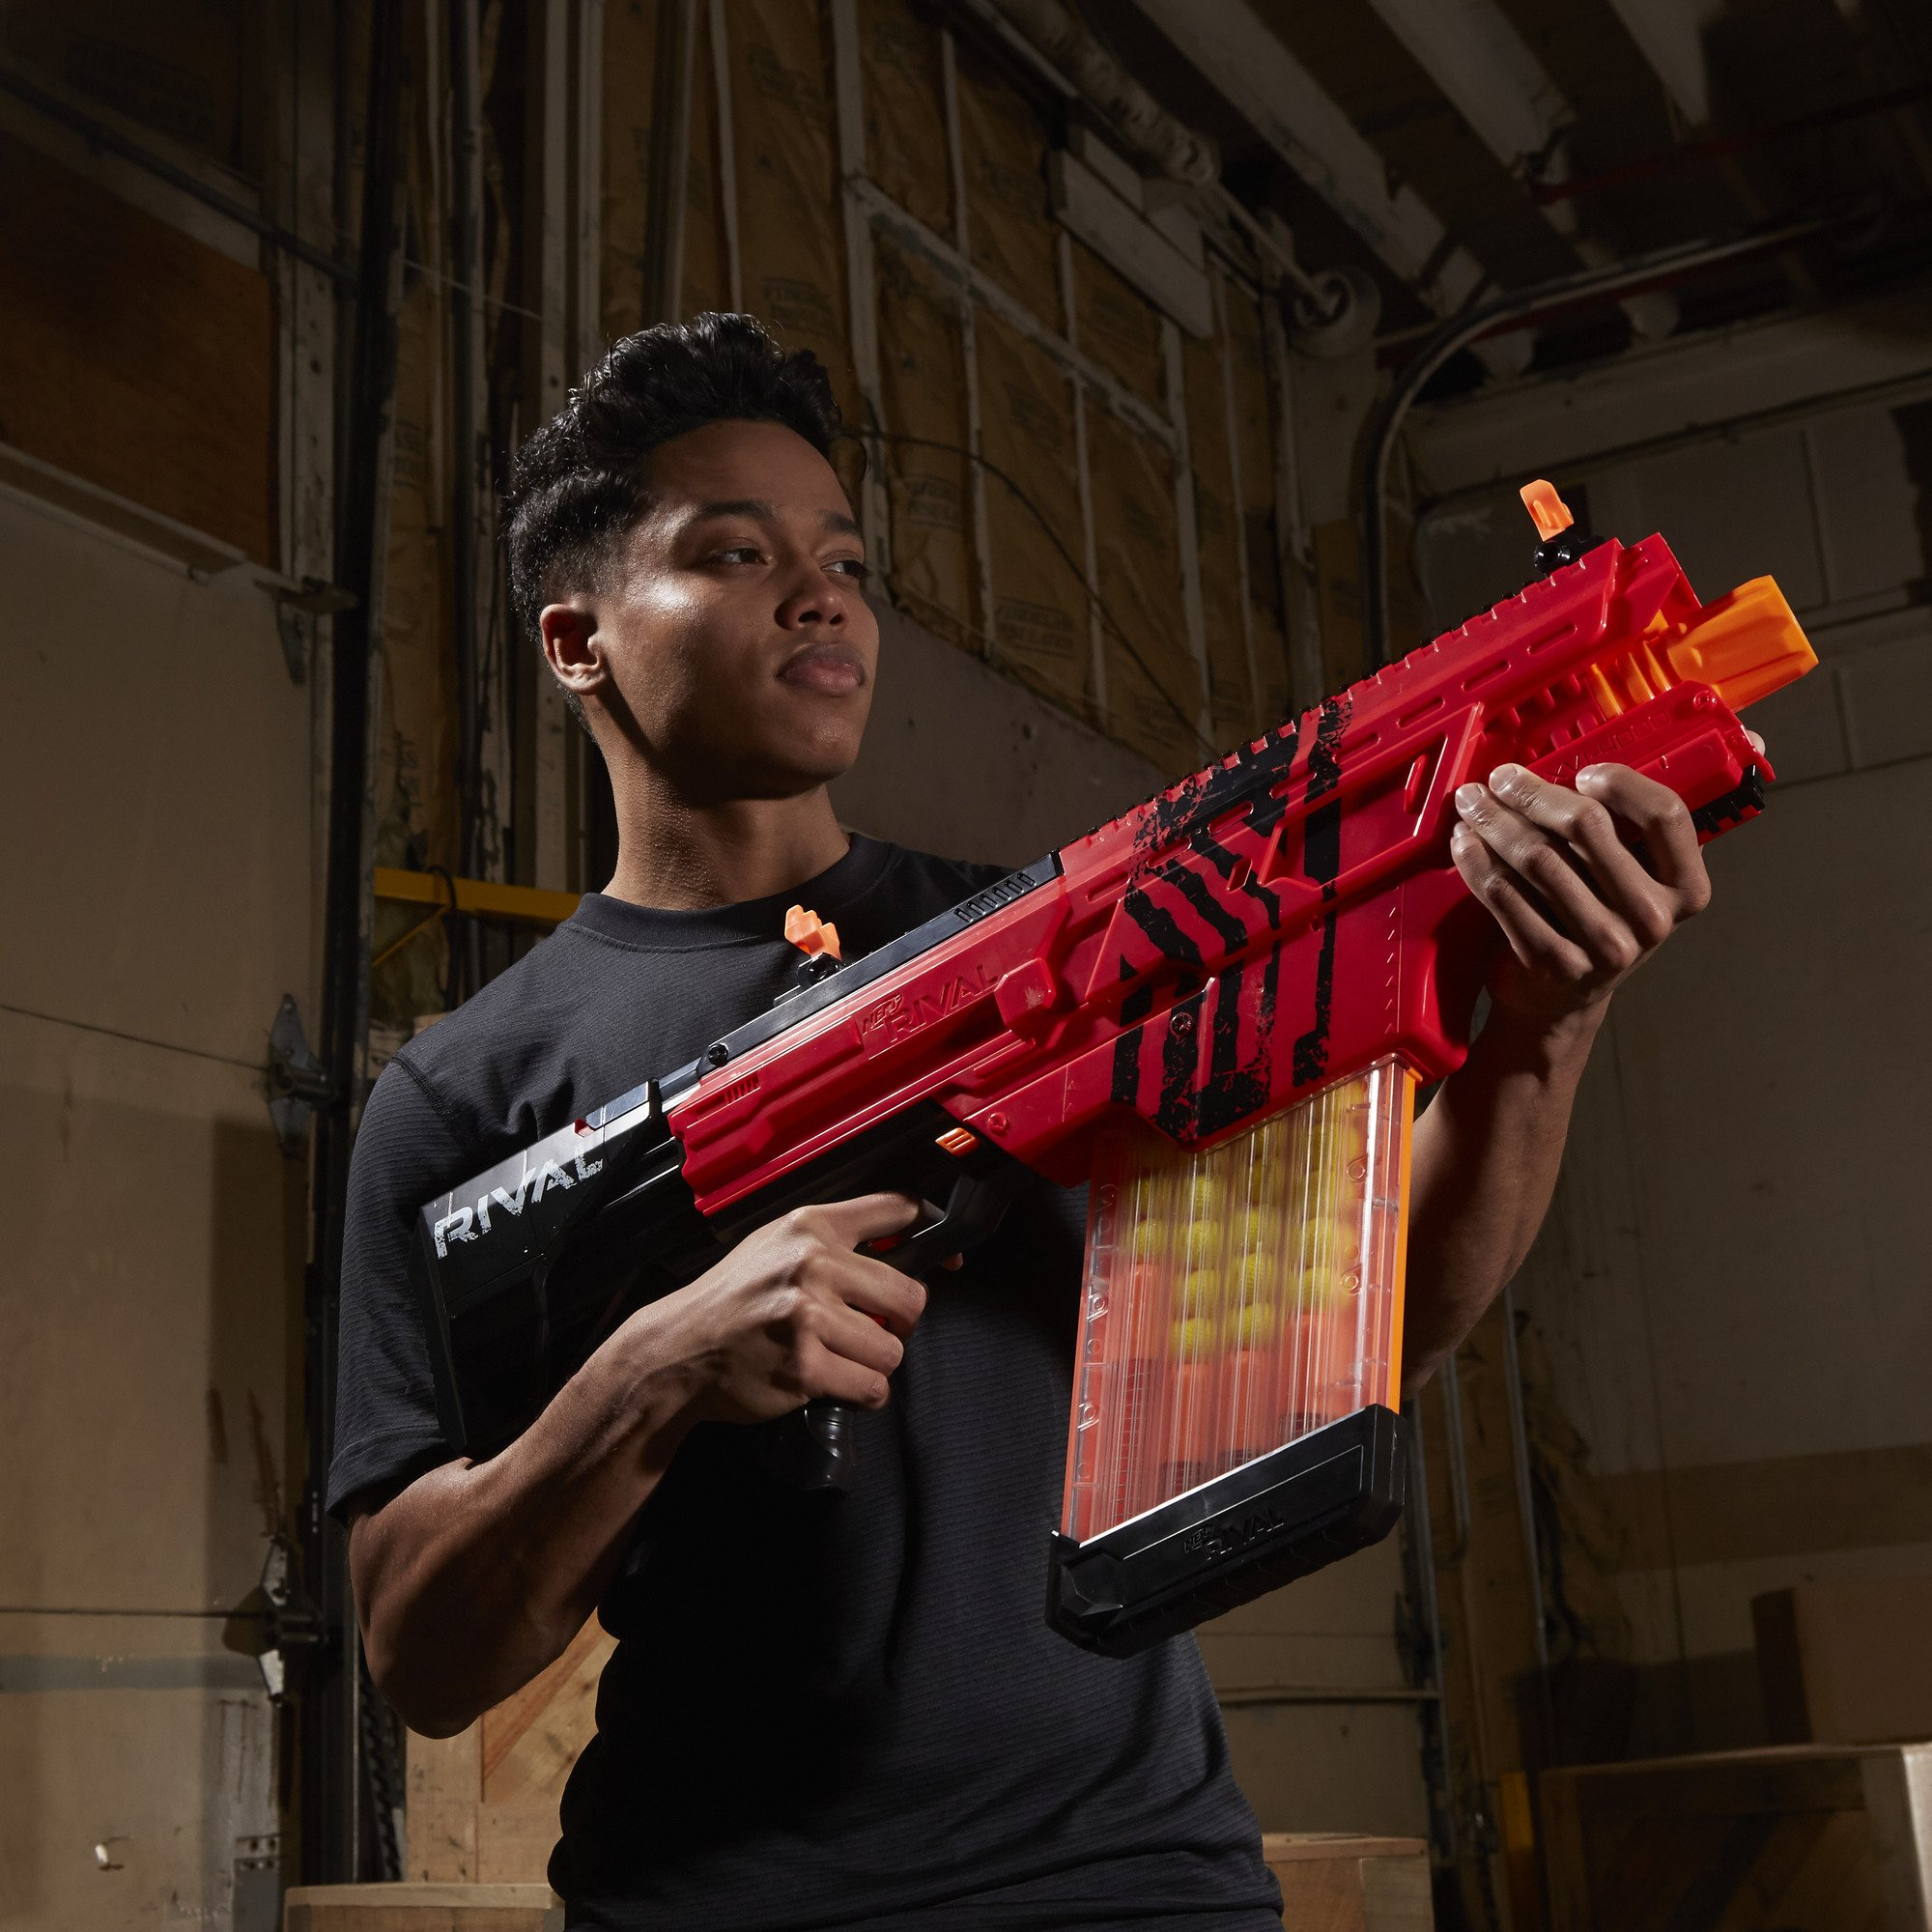 Nerf Rival Khaos MXVI-4000 Blaster (Red) by NERF (Image #8)